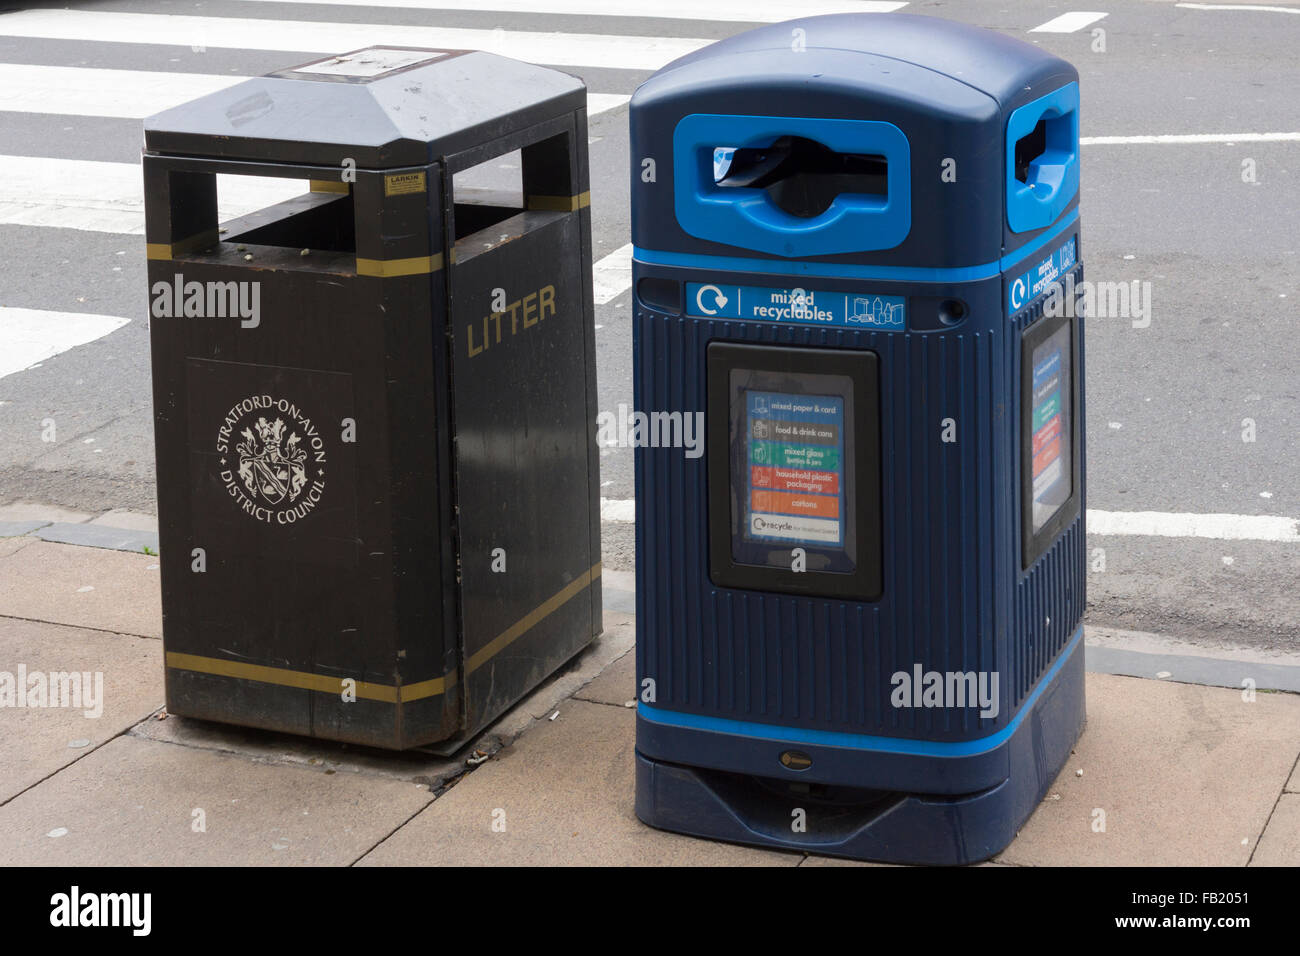 A litter bin and a recycling bin in Stratford upon Avon - Stock Image